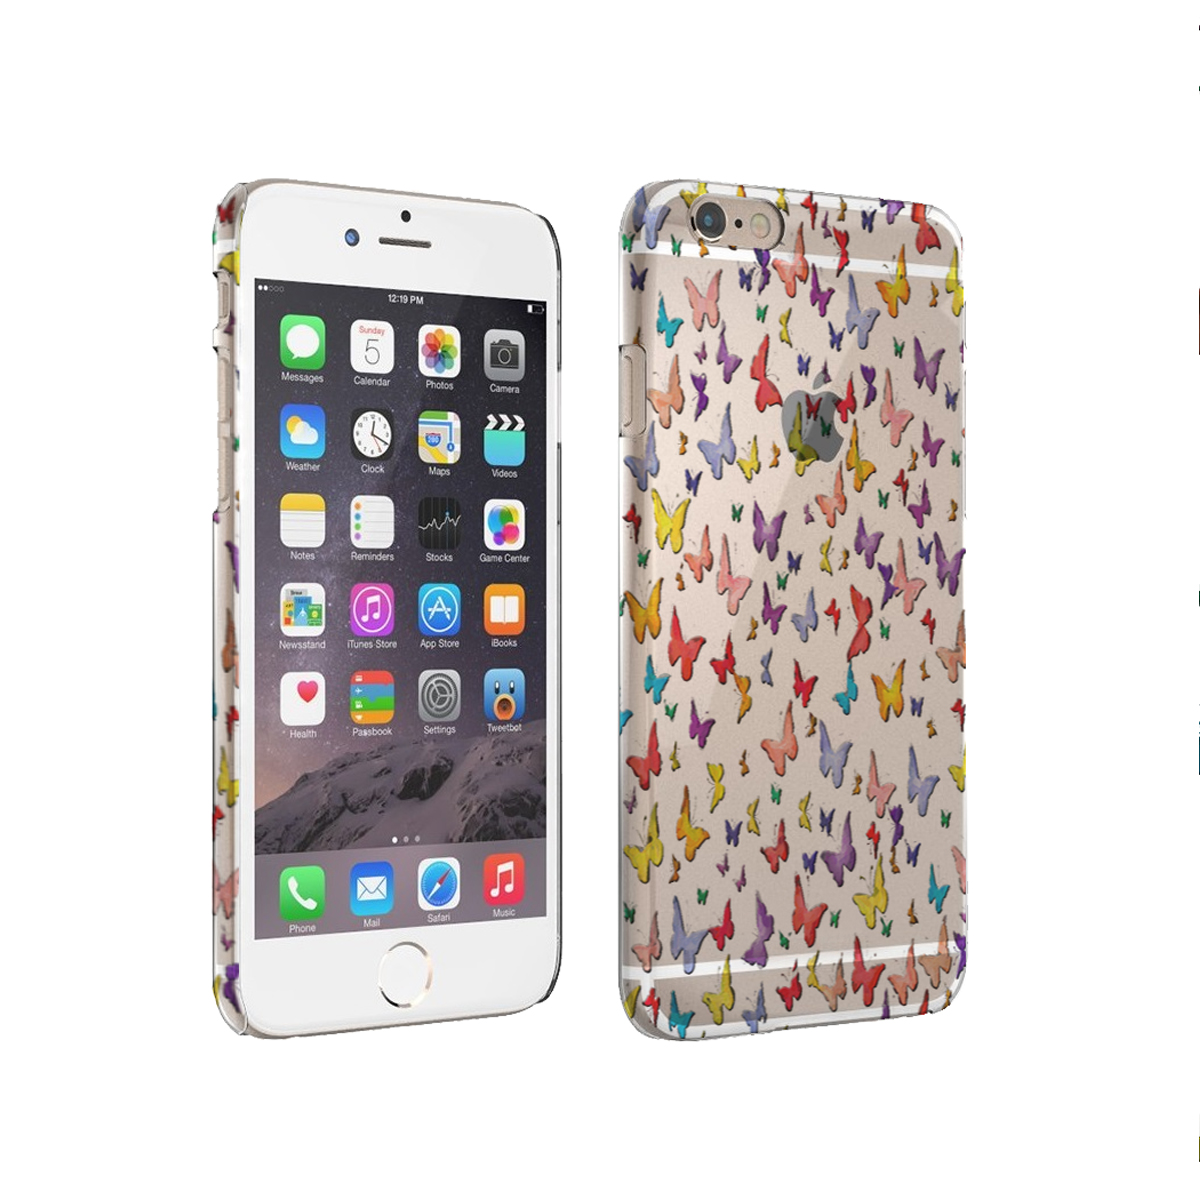 KuzmarK iPhone 6 Plus Clear Cover Case - Butterfly Wings